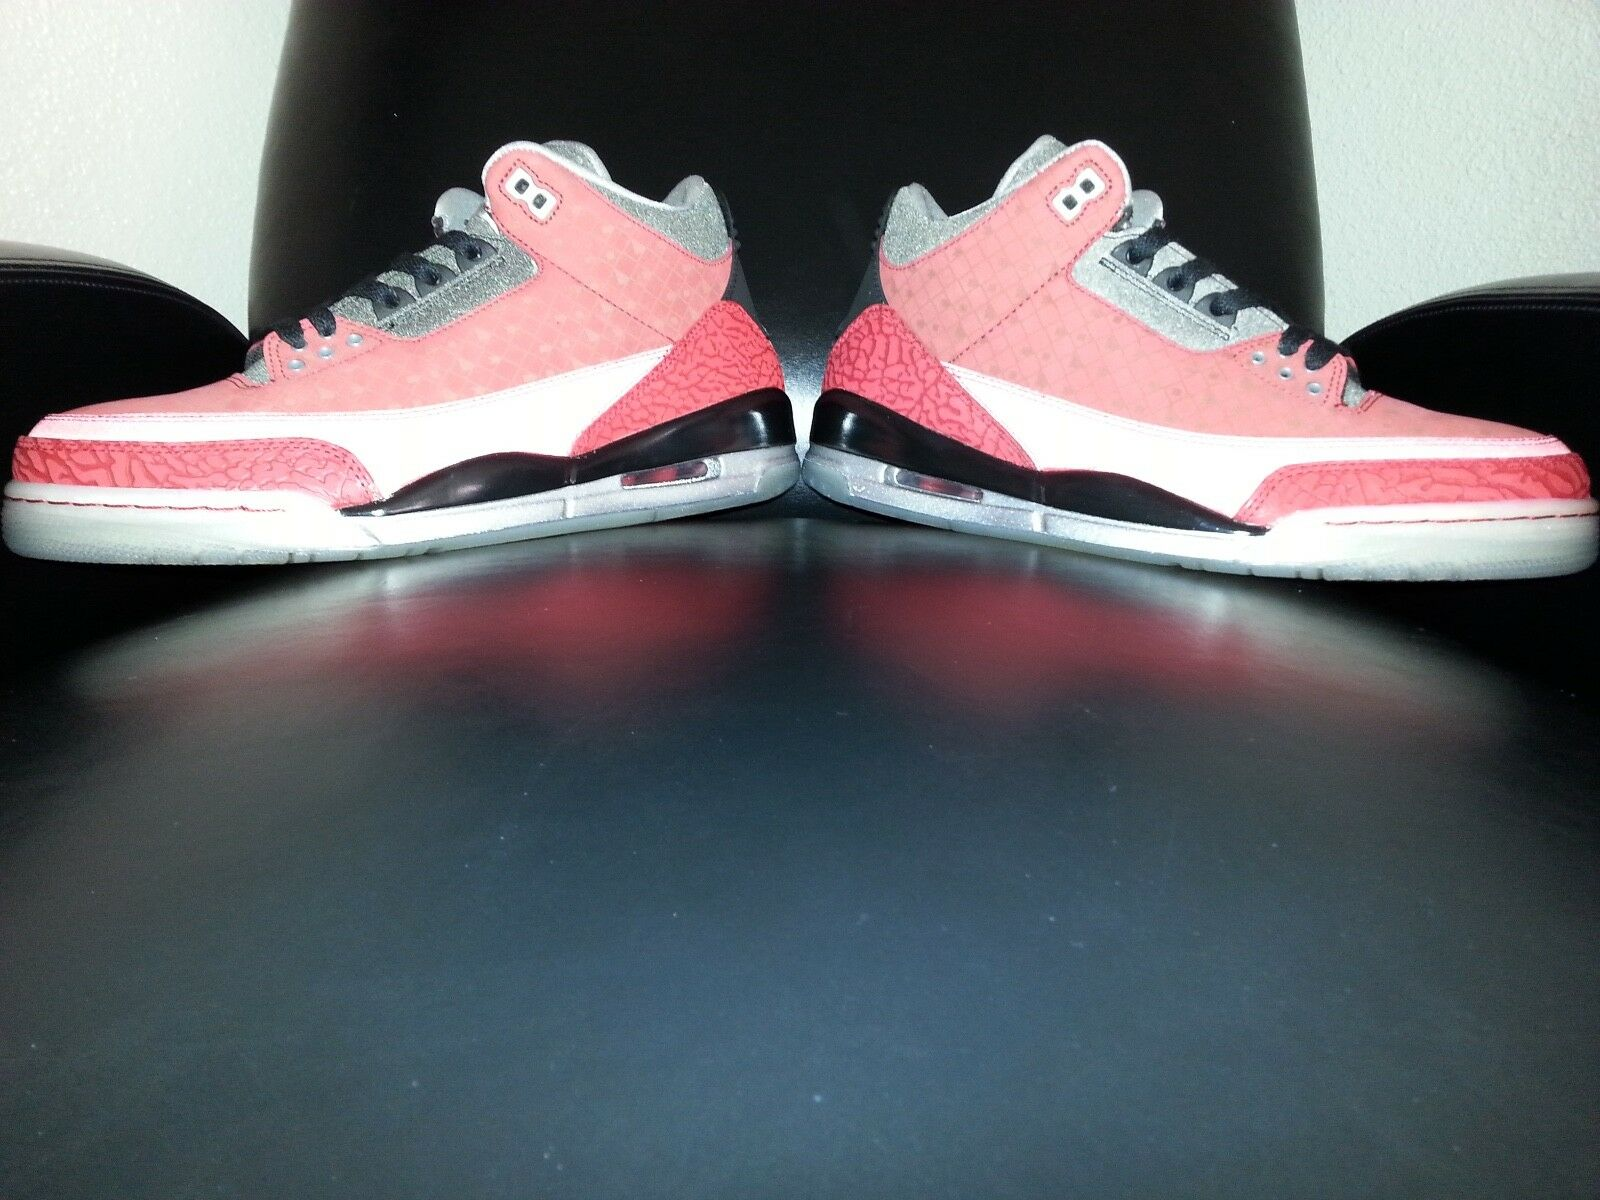 Air Jordan III Retro 2010 DB Doernbecher Varsity Red Black Size 10 (Used)